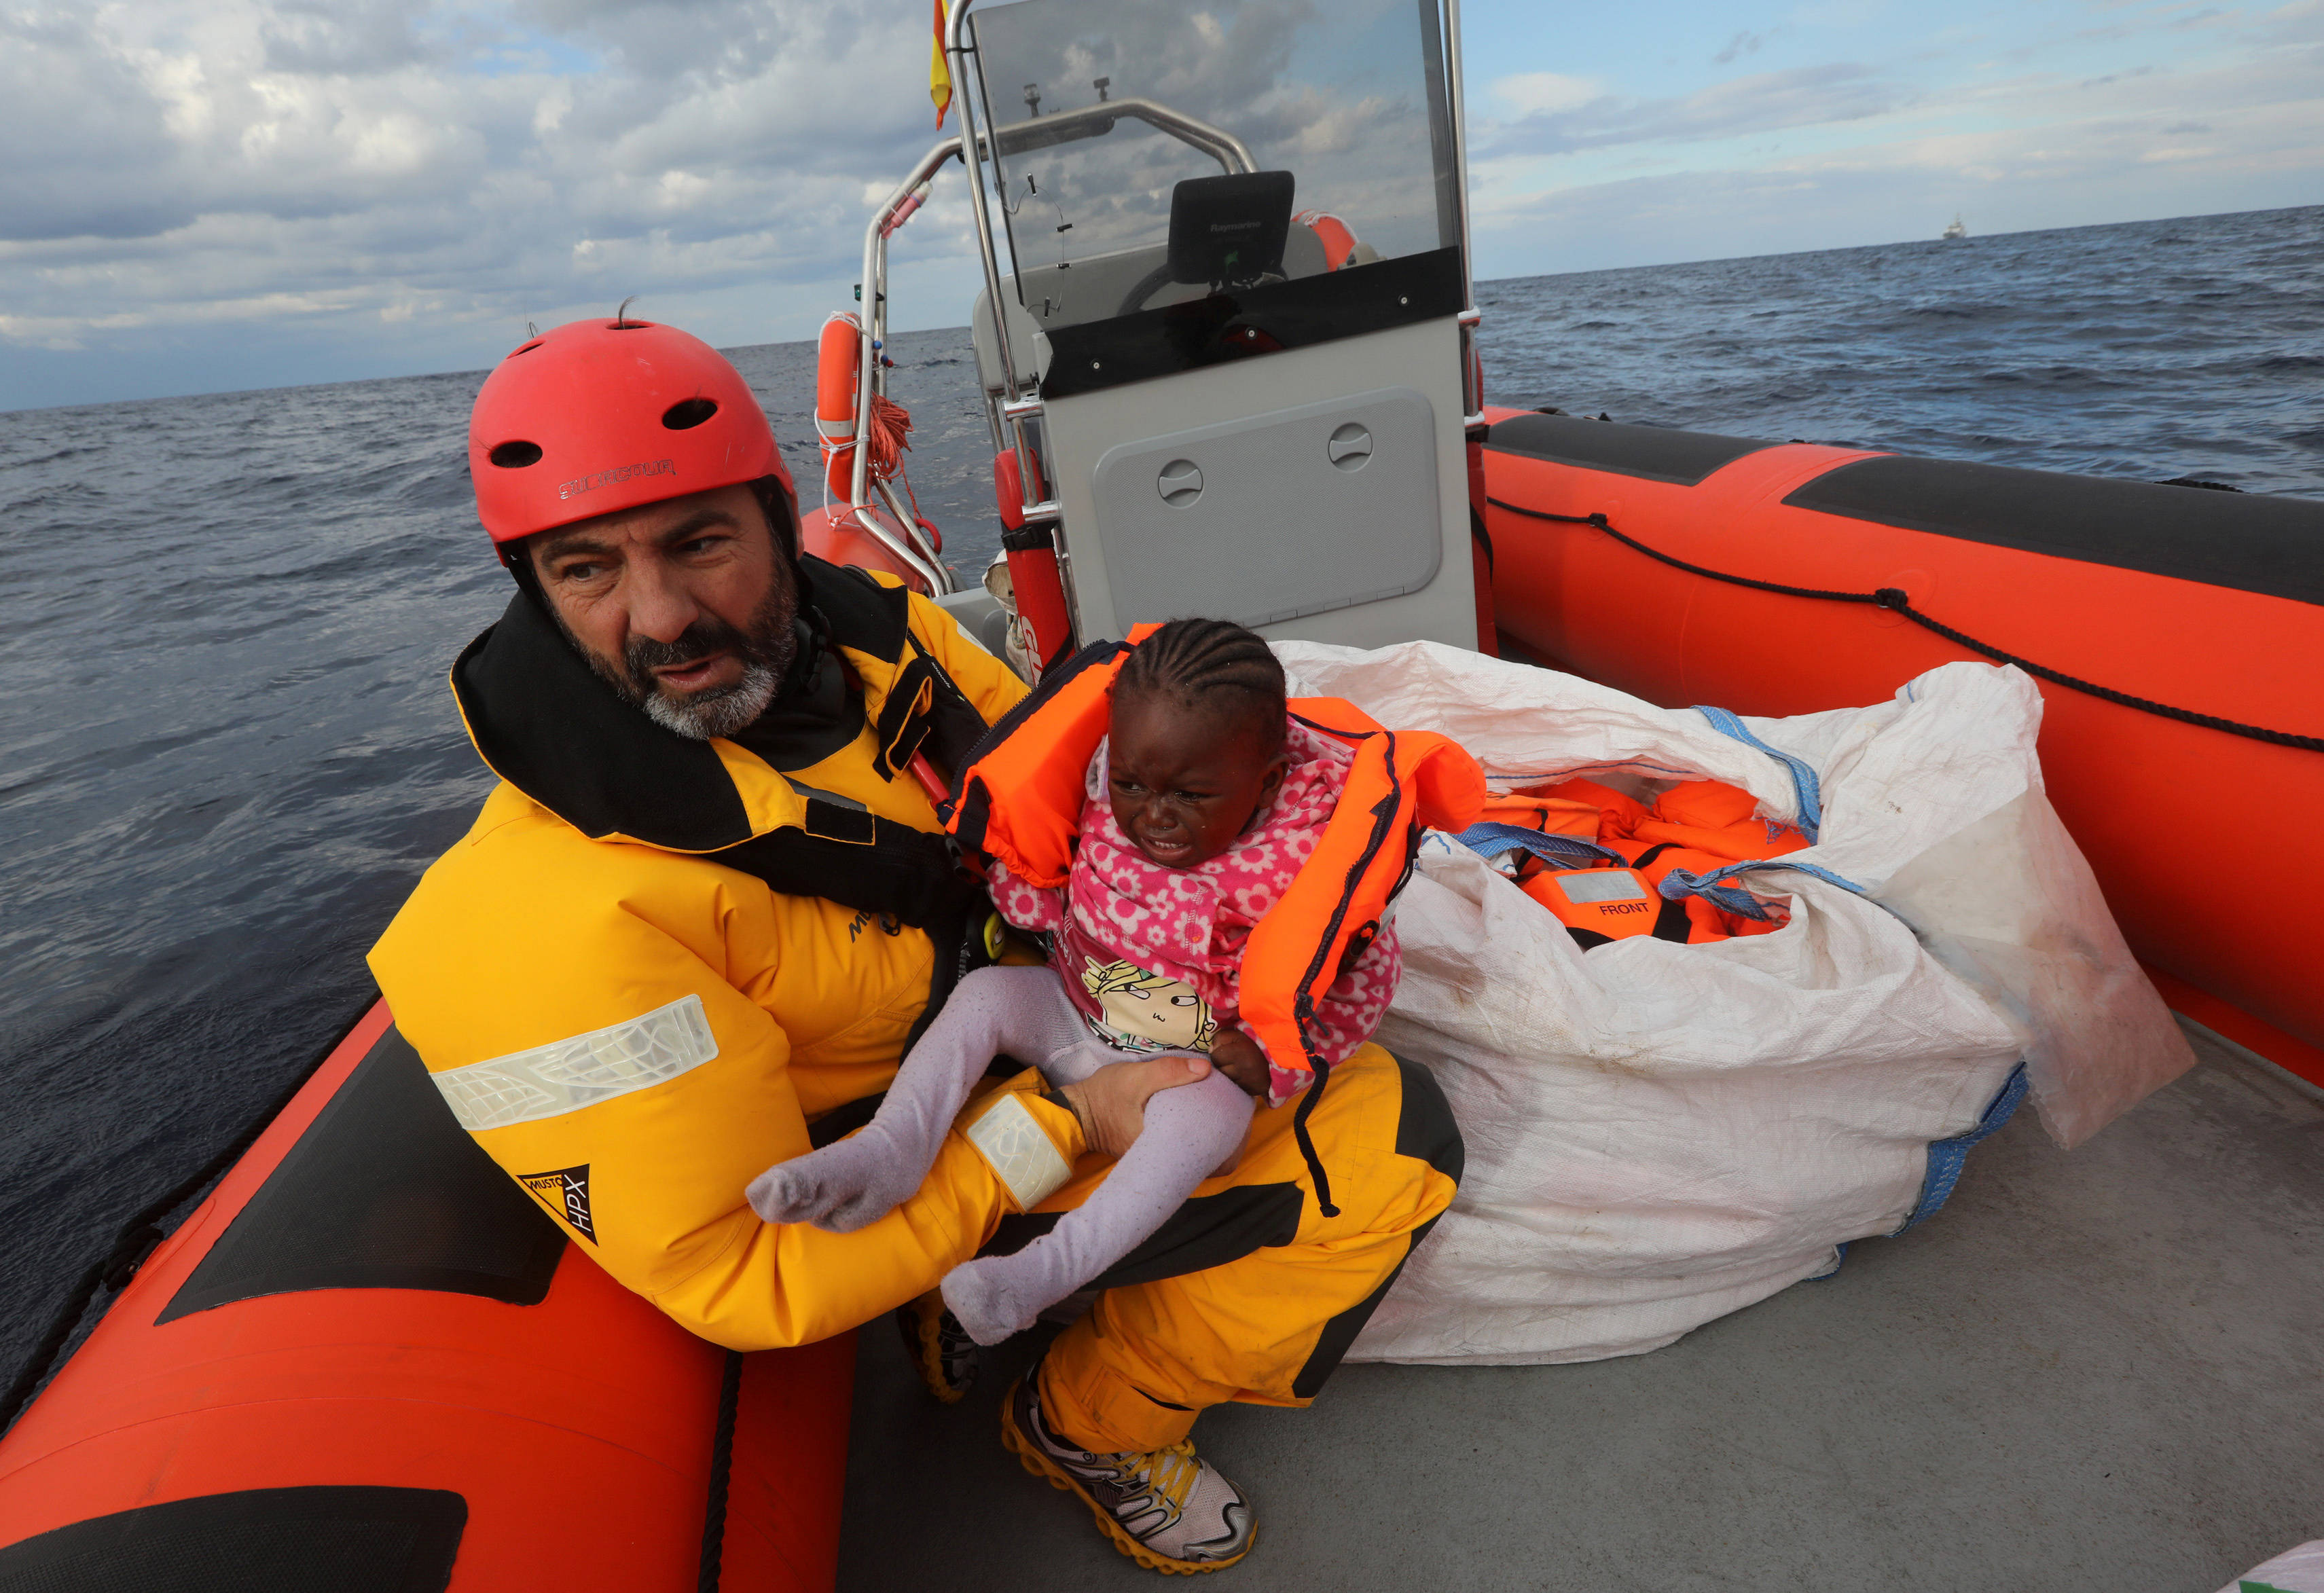 Oscar Camps, founder of Proactiva Open Arms, holds a baby removed from a raft that went adrift in the Mediterranean Sea. The group rescued all 112 migrants aboard. Photo by Yannis Behrakis/Reuters